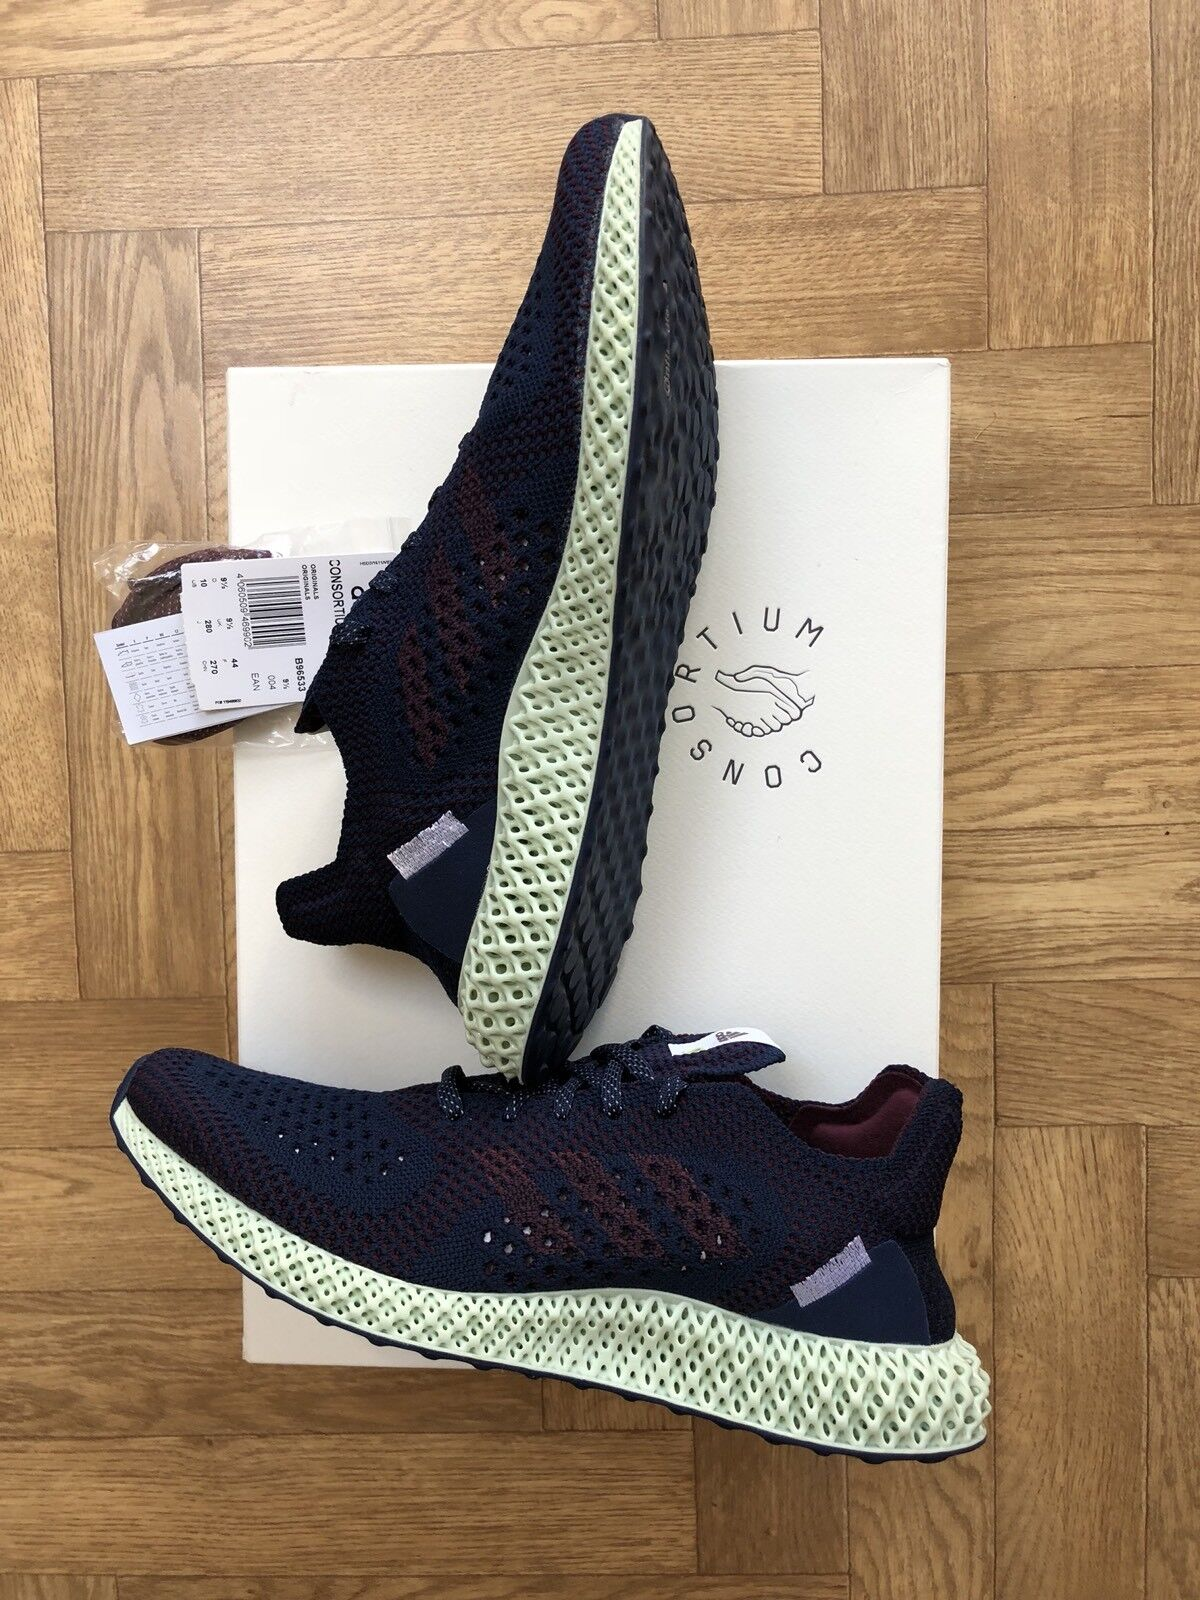 Adidas Consortium Runner S Futurecraft Uk Size 9.5 Boxed New (with Receipt)